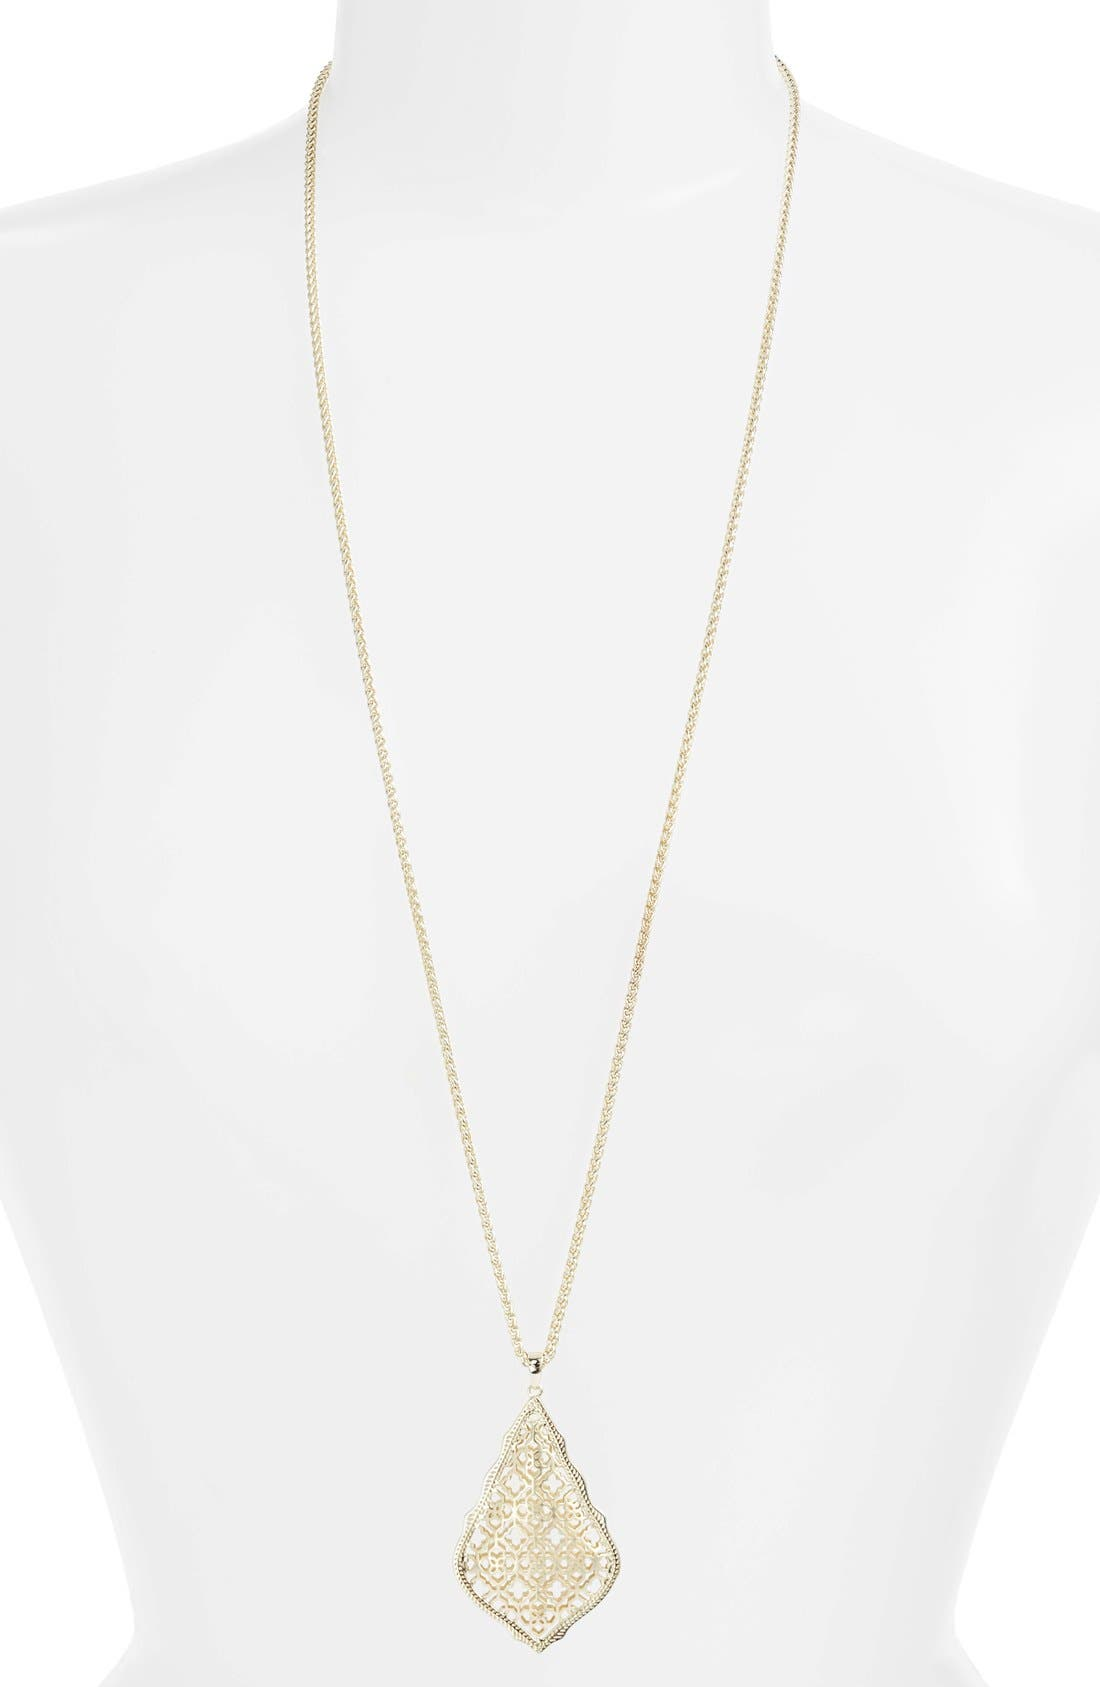 Alternate Image 1 Selected - Kendra Scott 'Aiden' Pendant Necklace